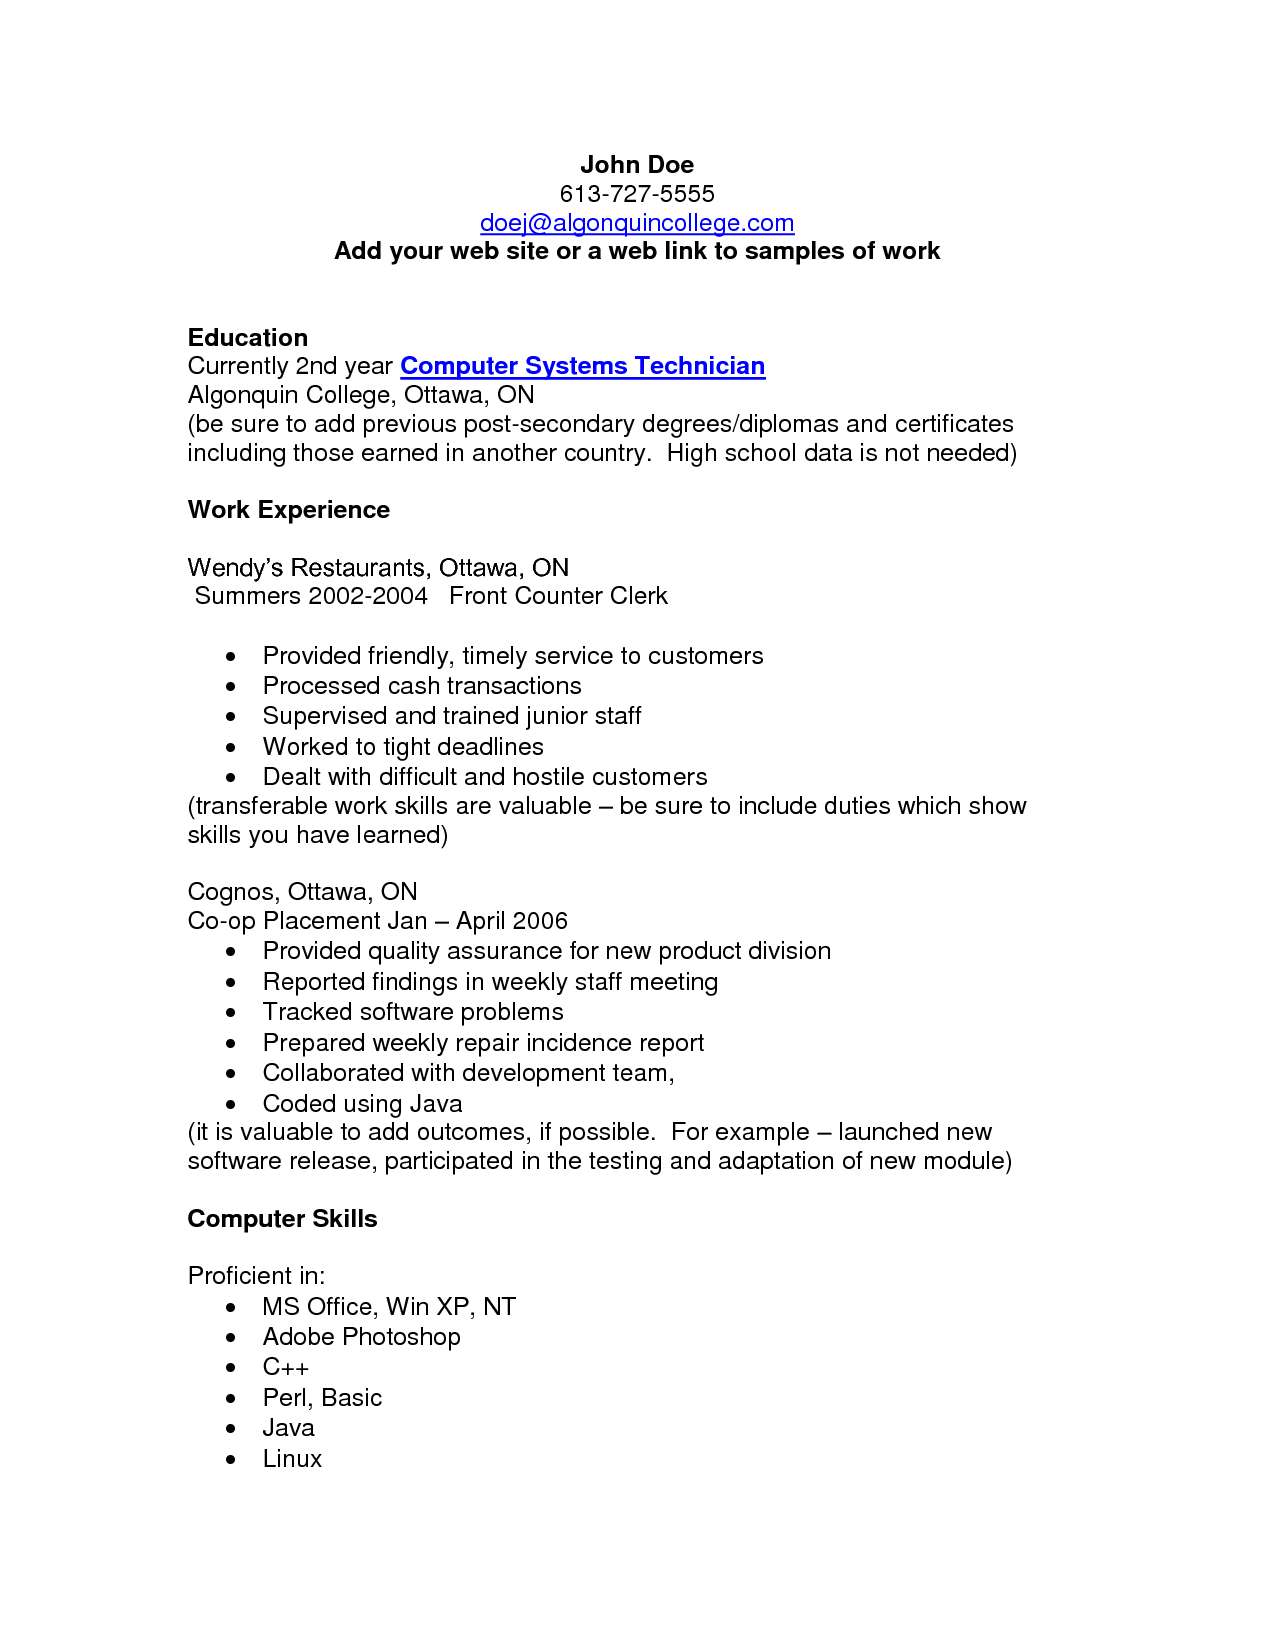 resume examples computer skills reno package for resale flat - Computer Repair Resume